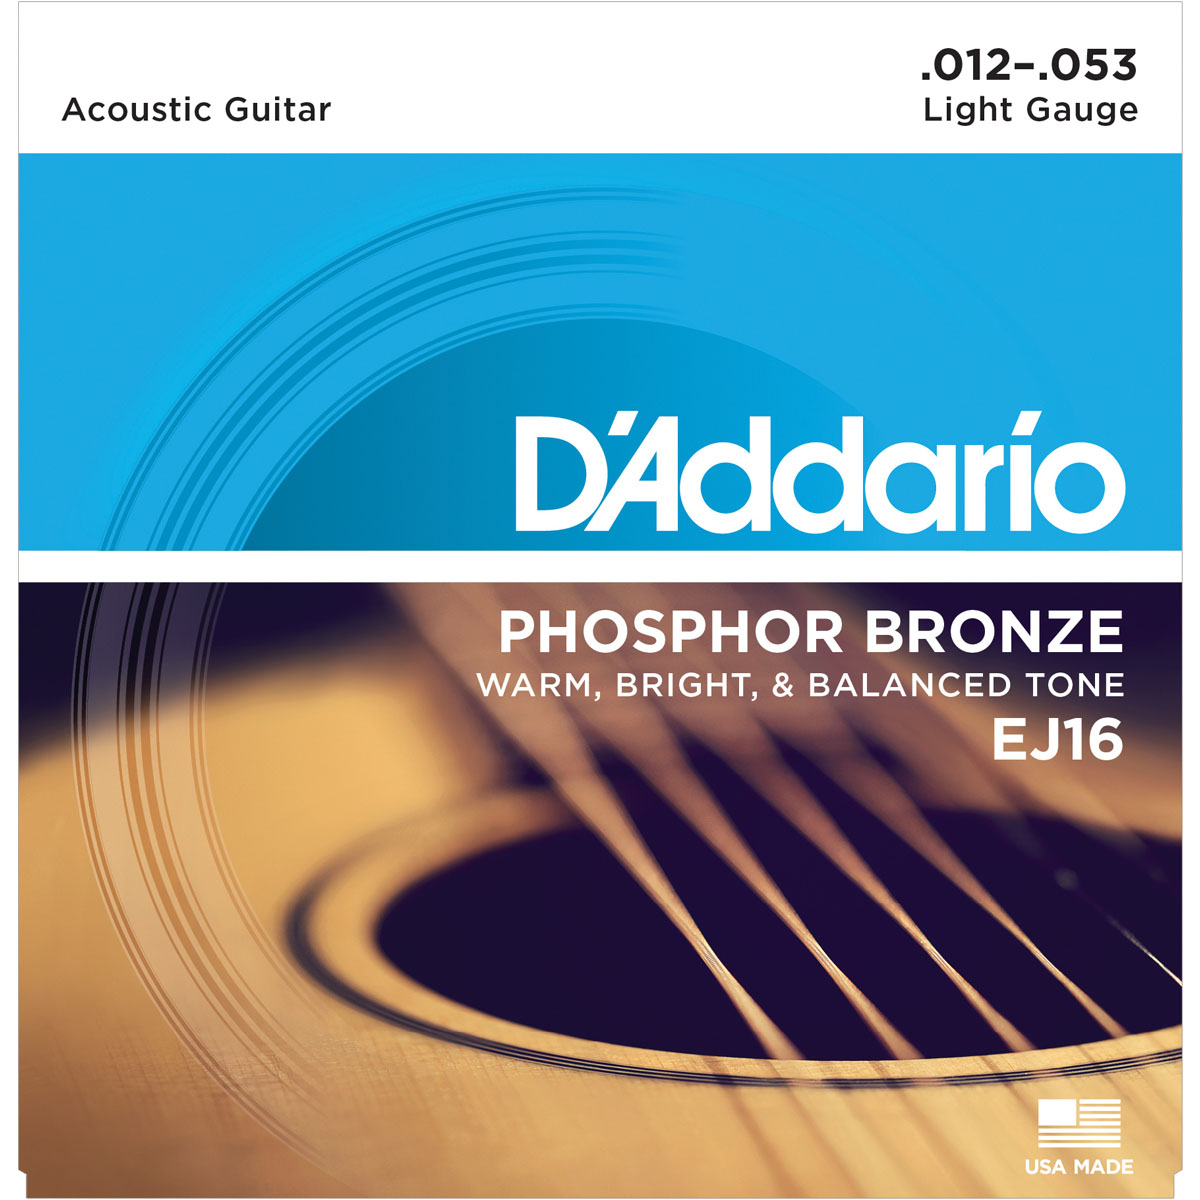 D'Addario EJ16 Acoustic Guitar Strings